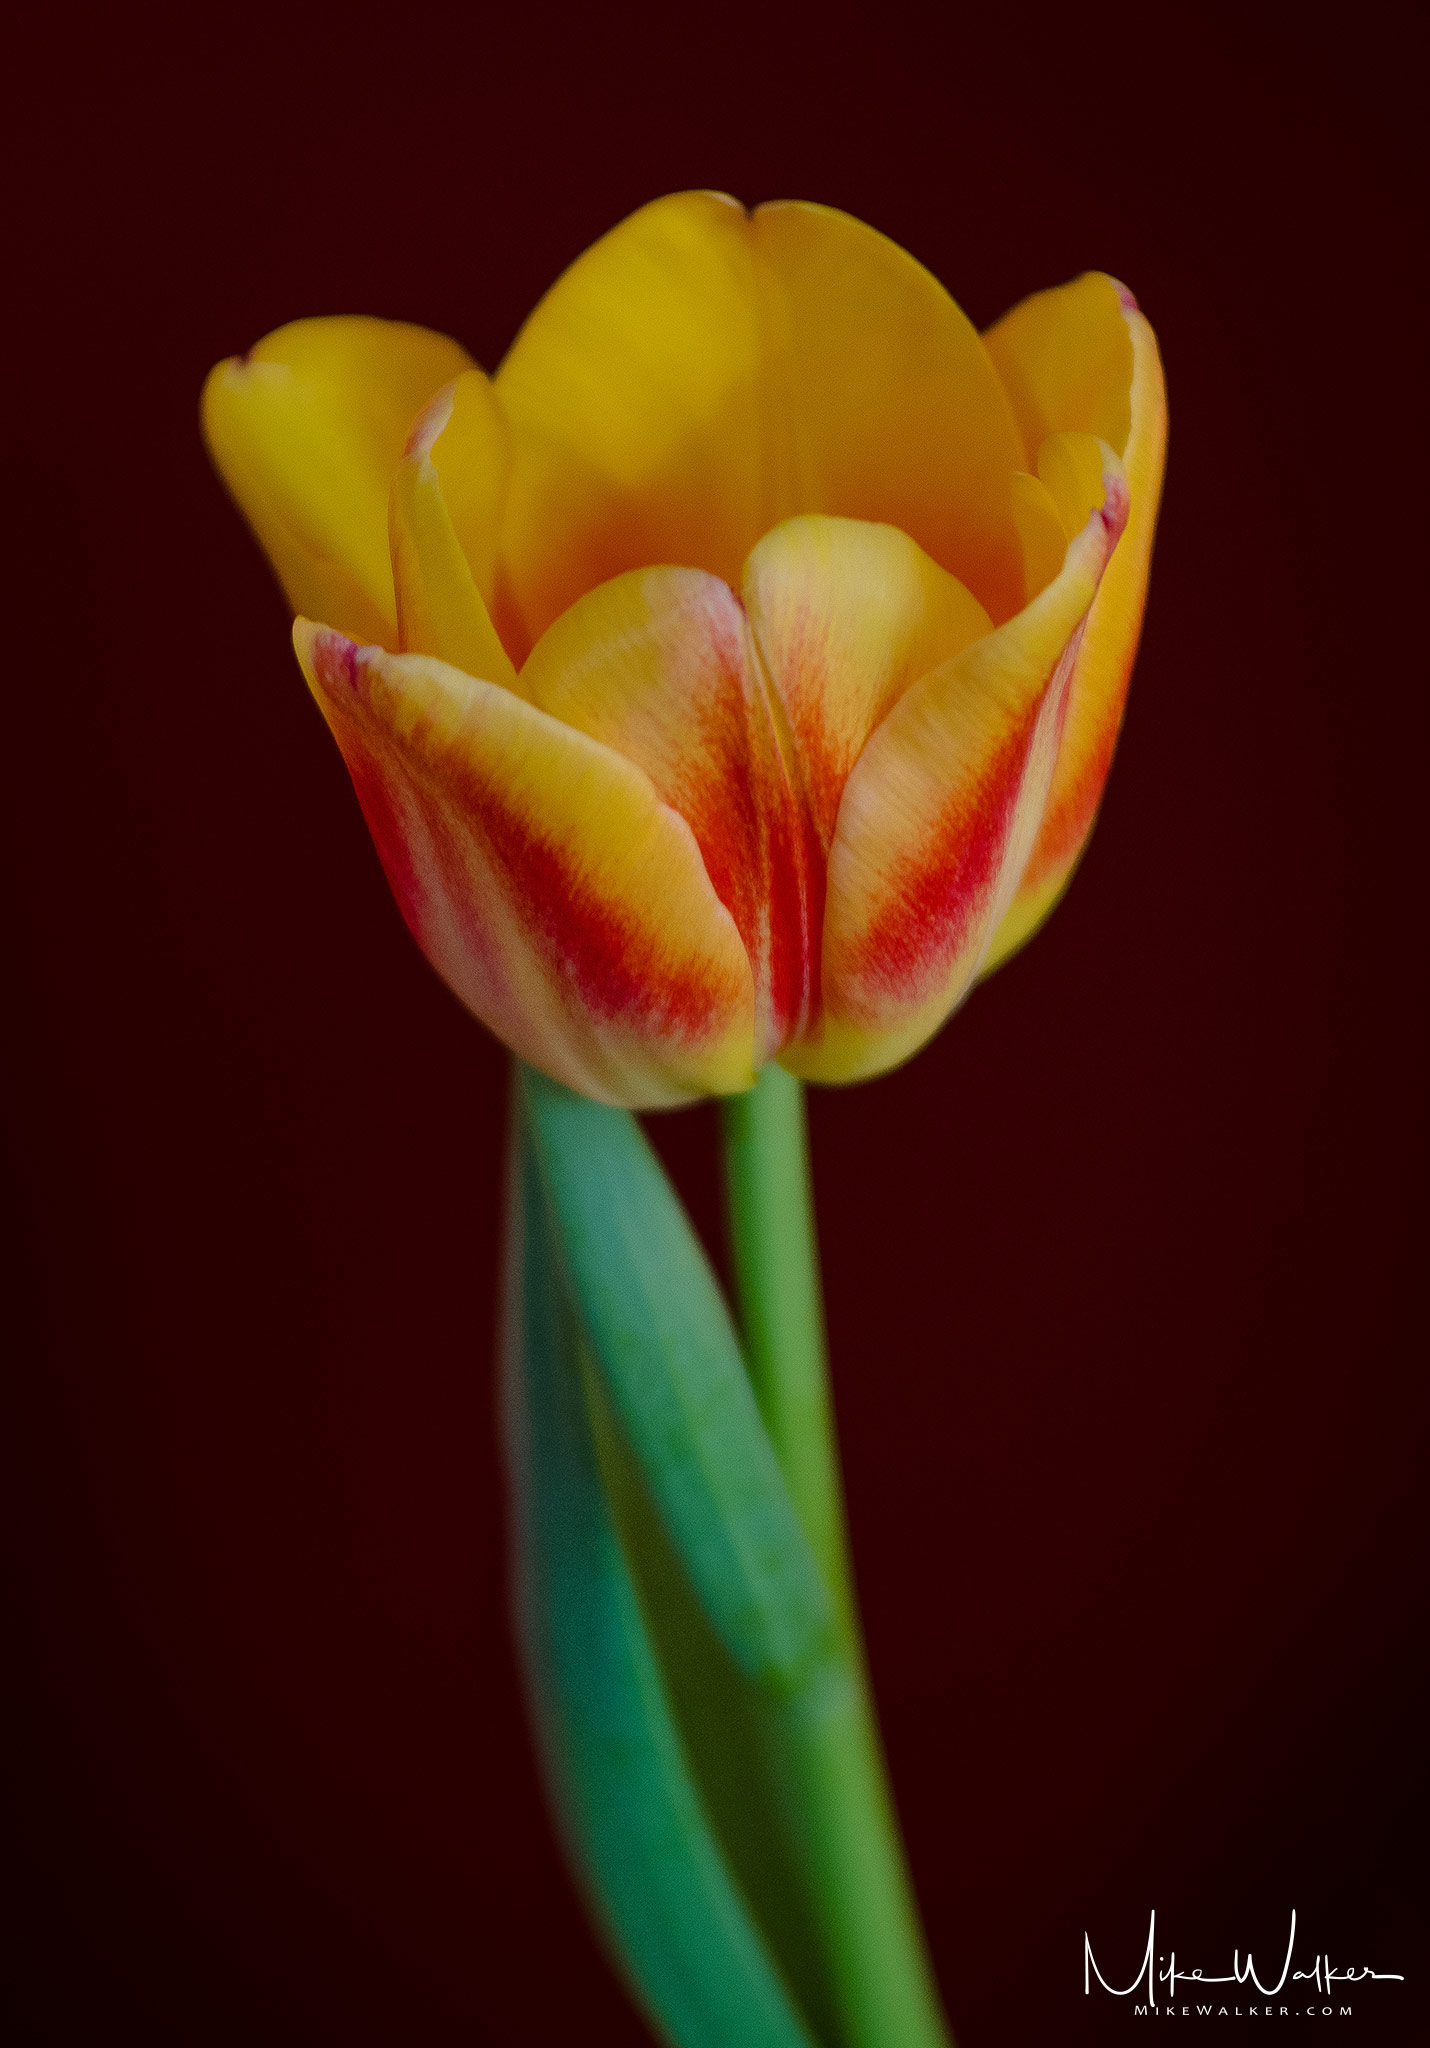 A single tulip against a dark red background. Nature photography by Mike Walker.